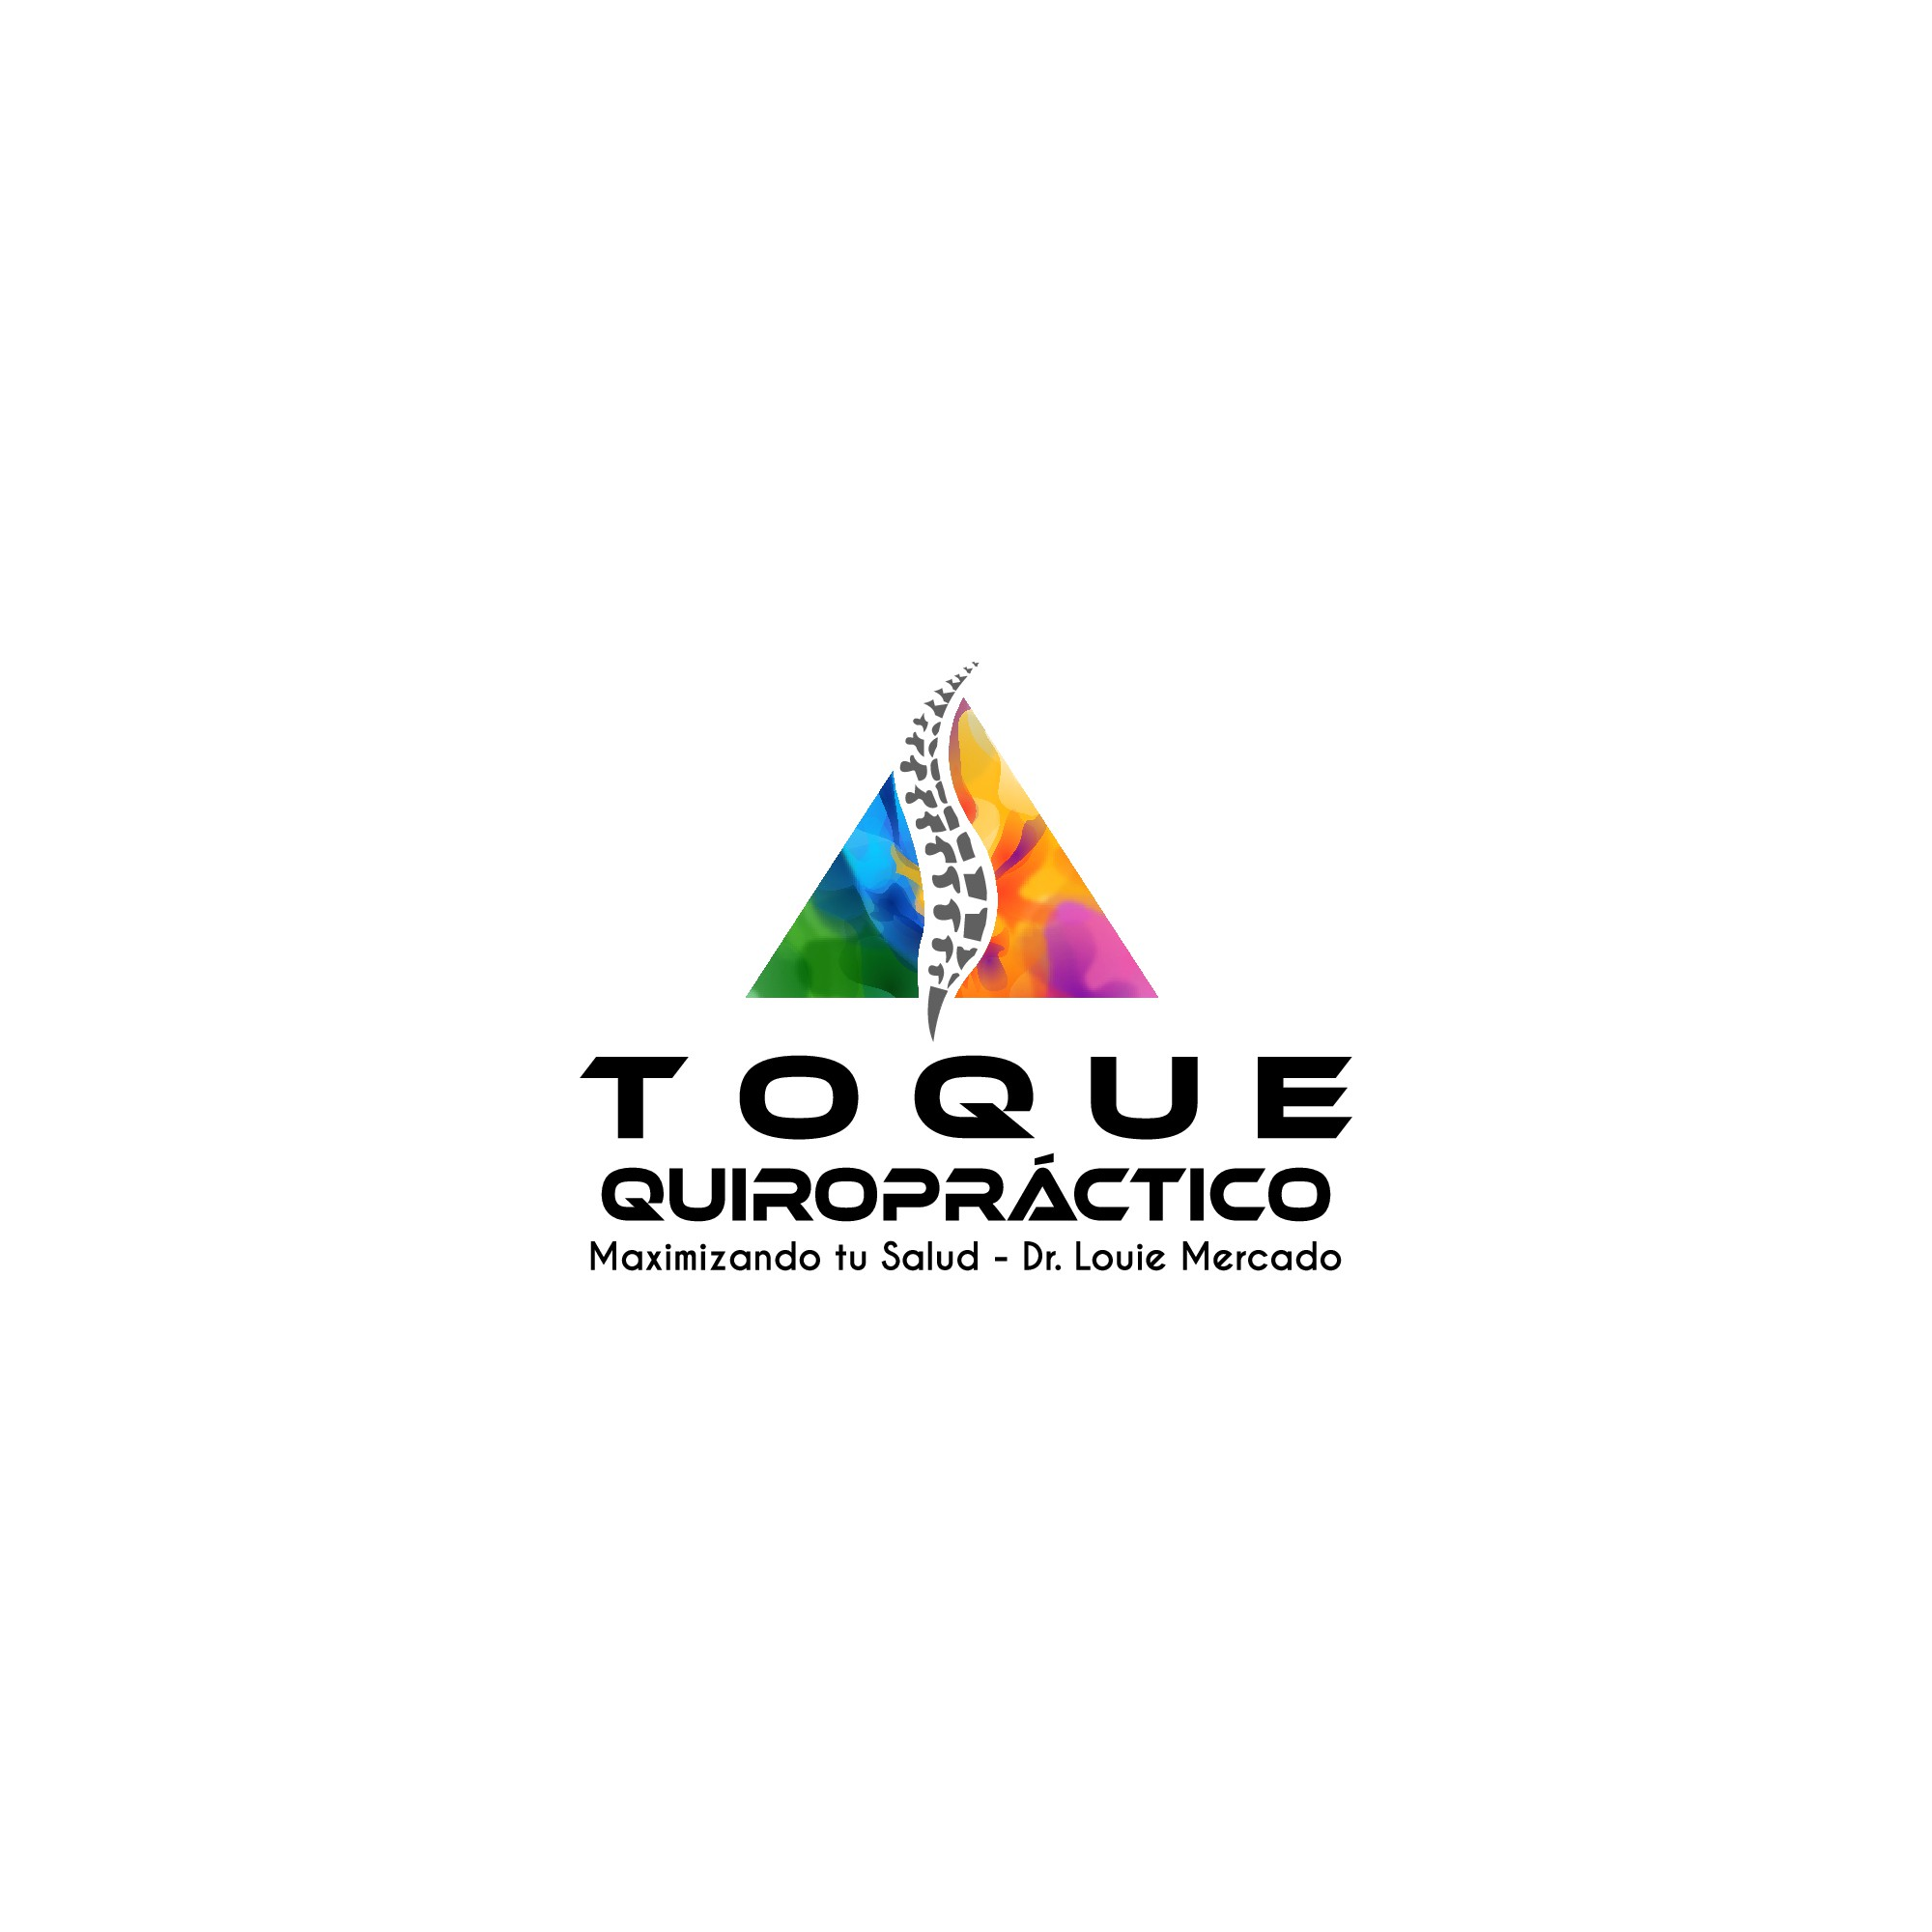 Logo Design for a Chiropractic Office!!!